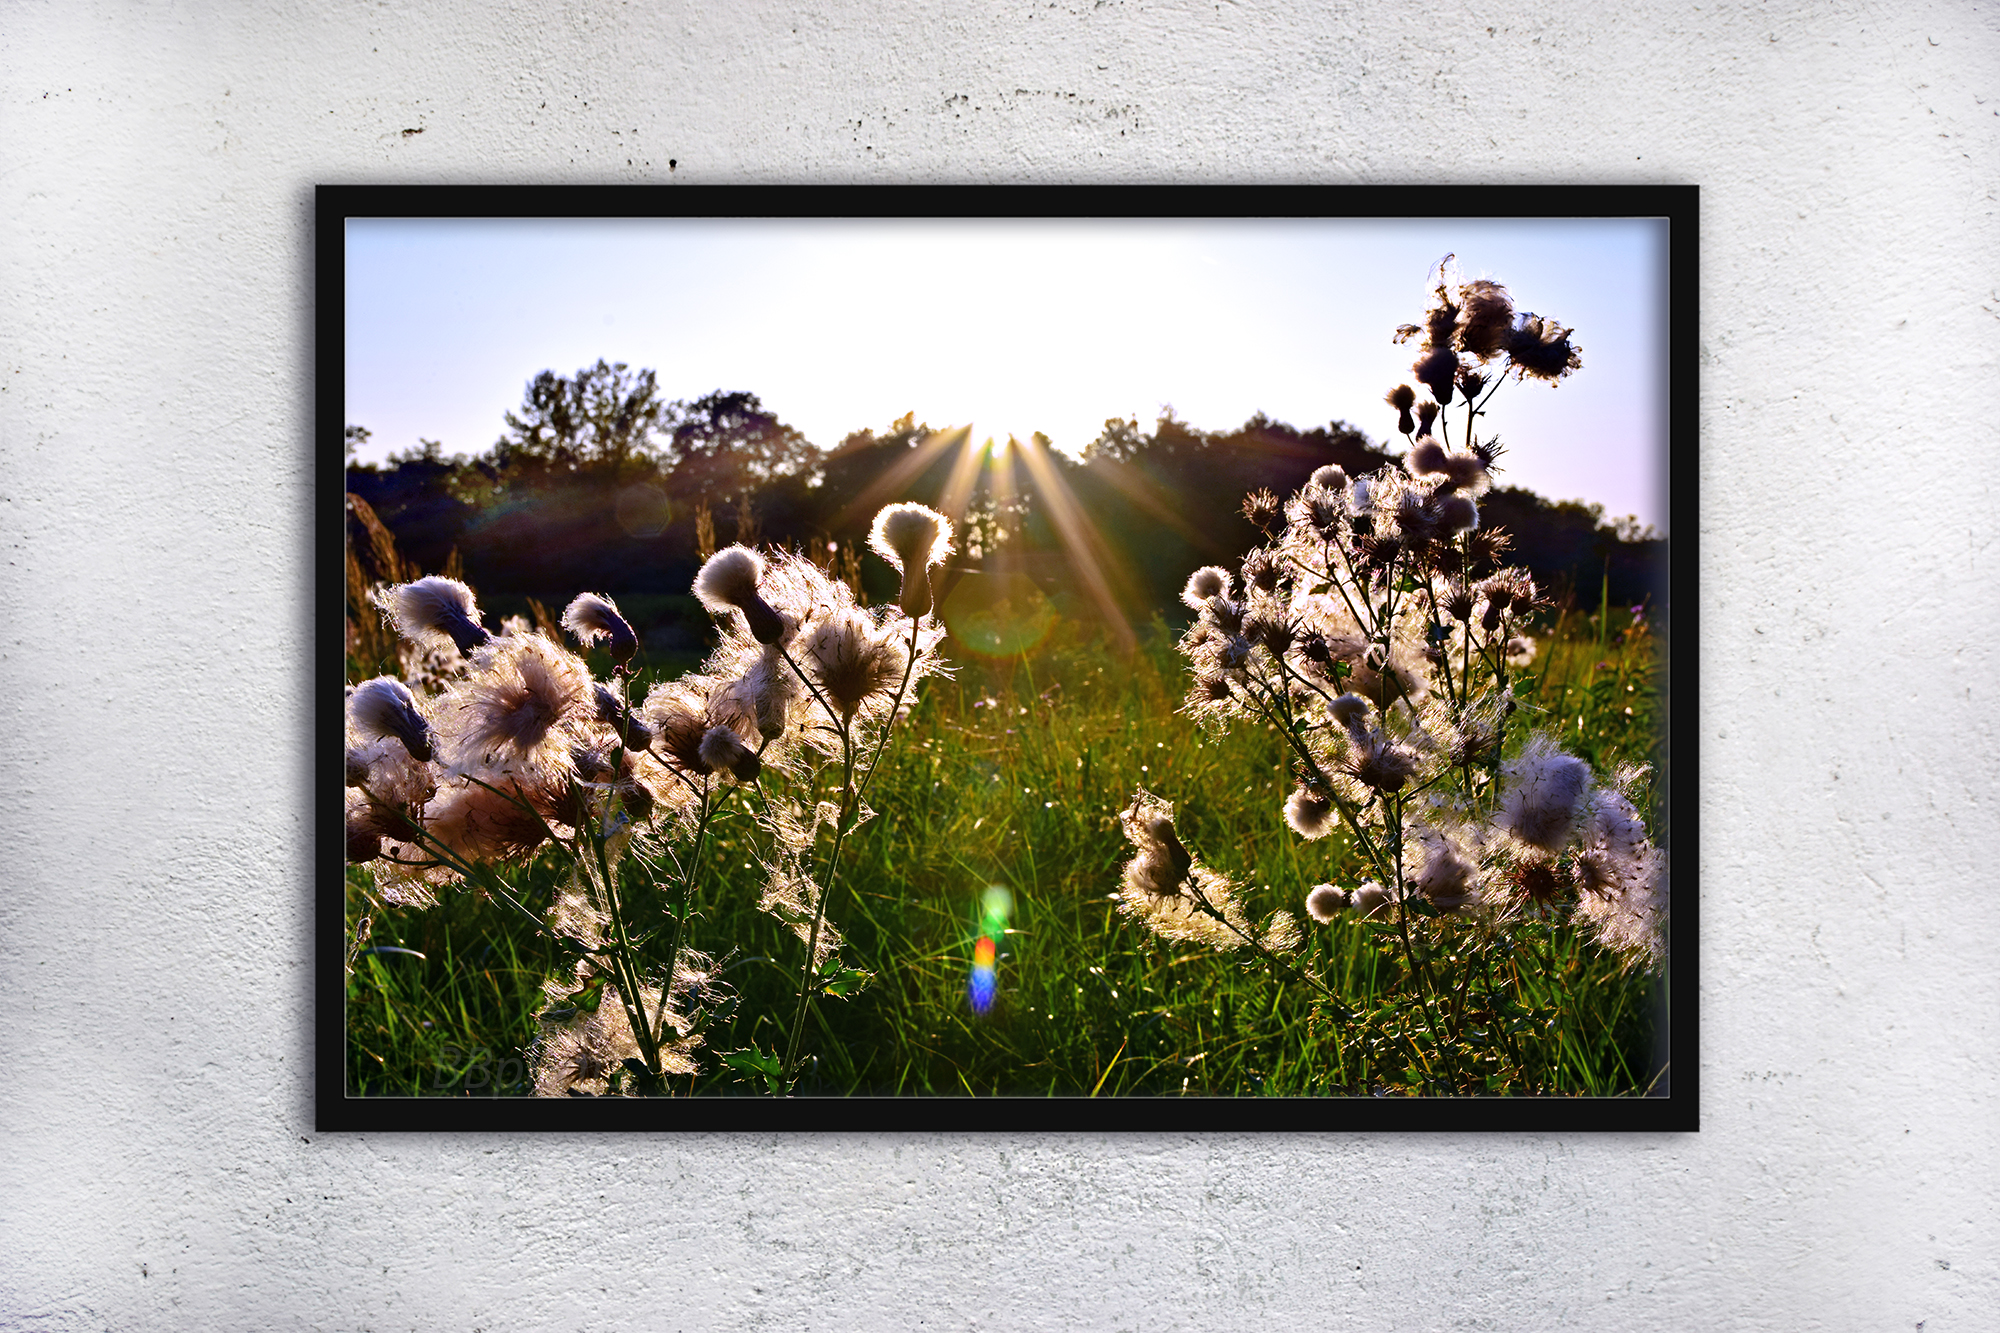 Nature photo, landscape photo, floral photo, fluffy grass example image 3